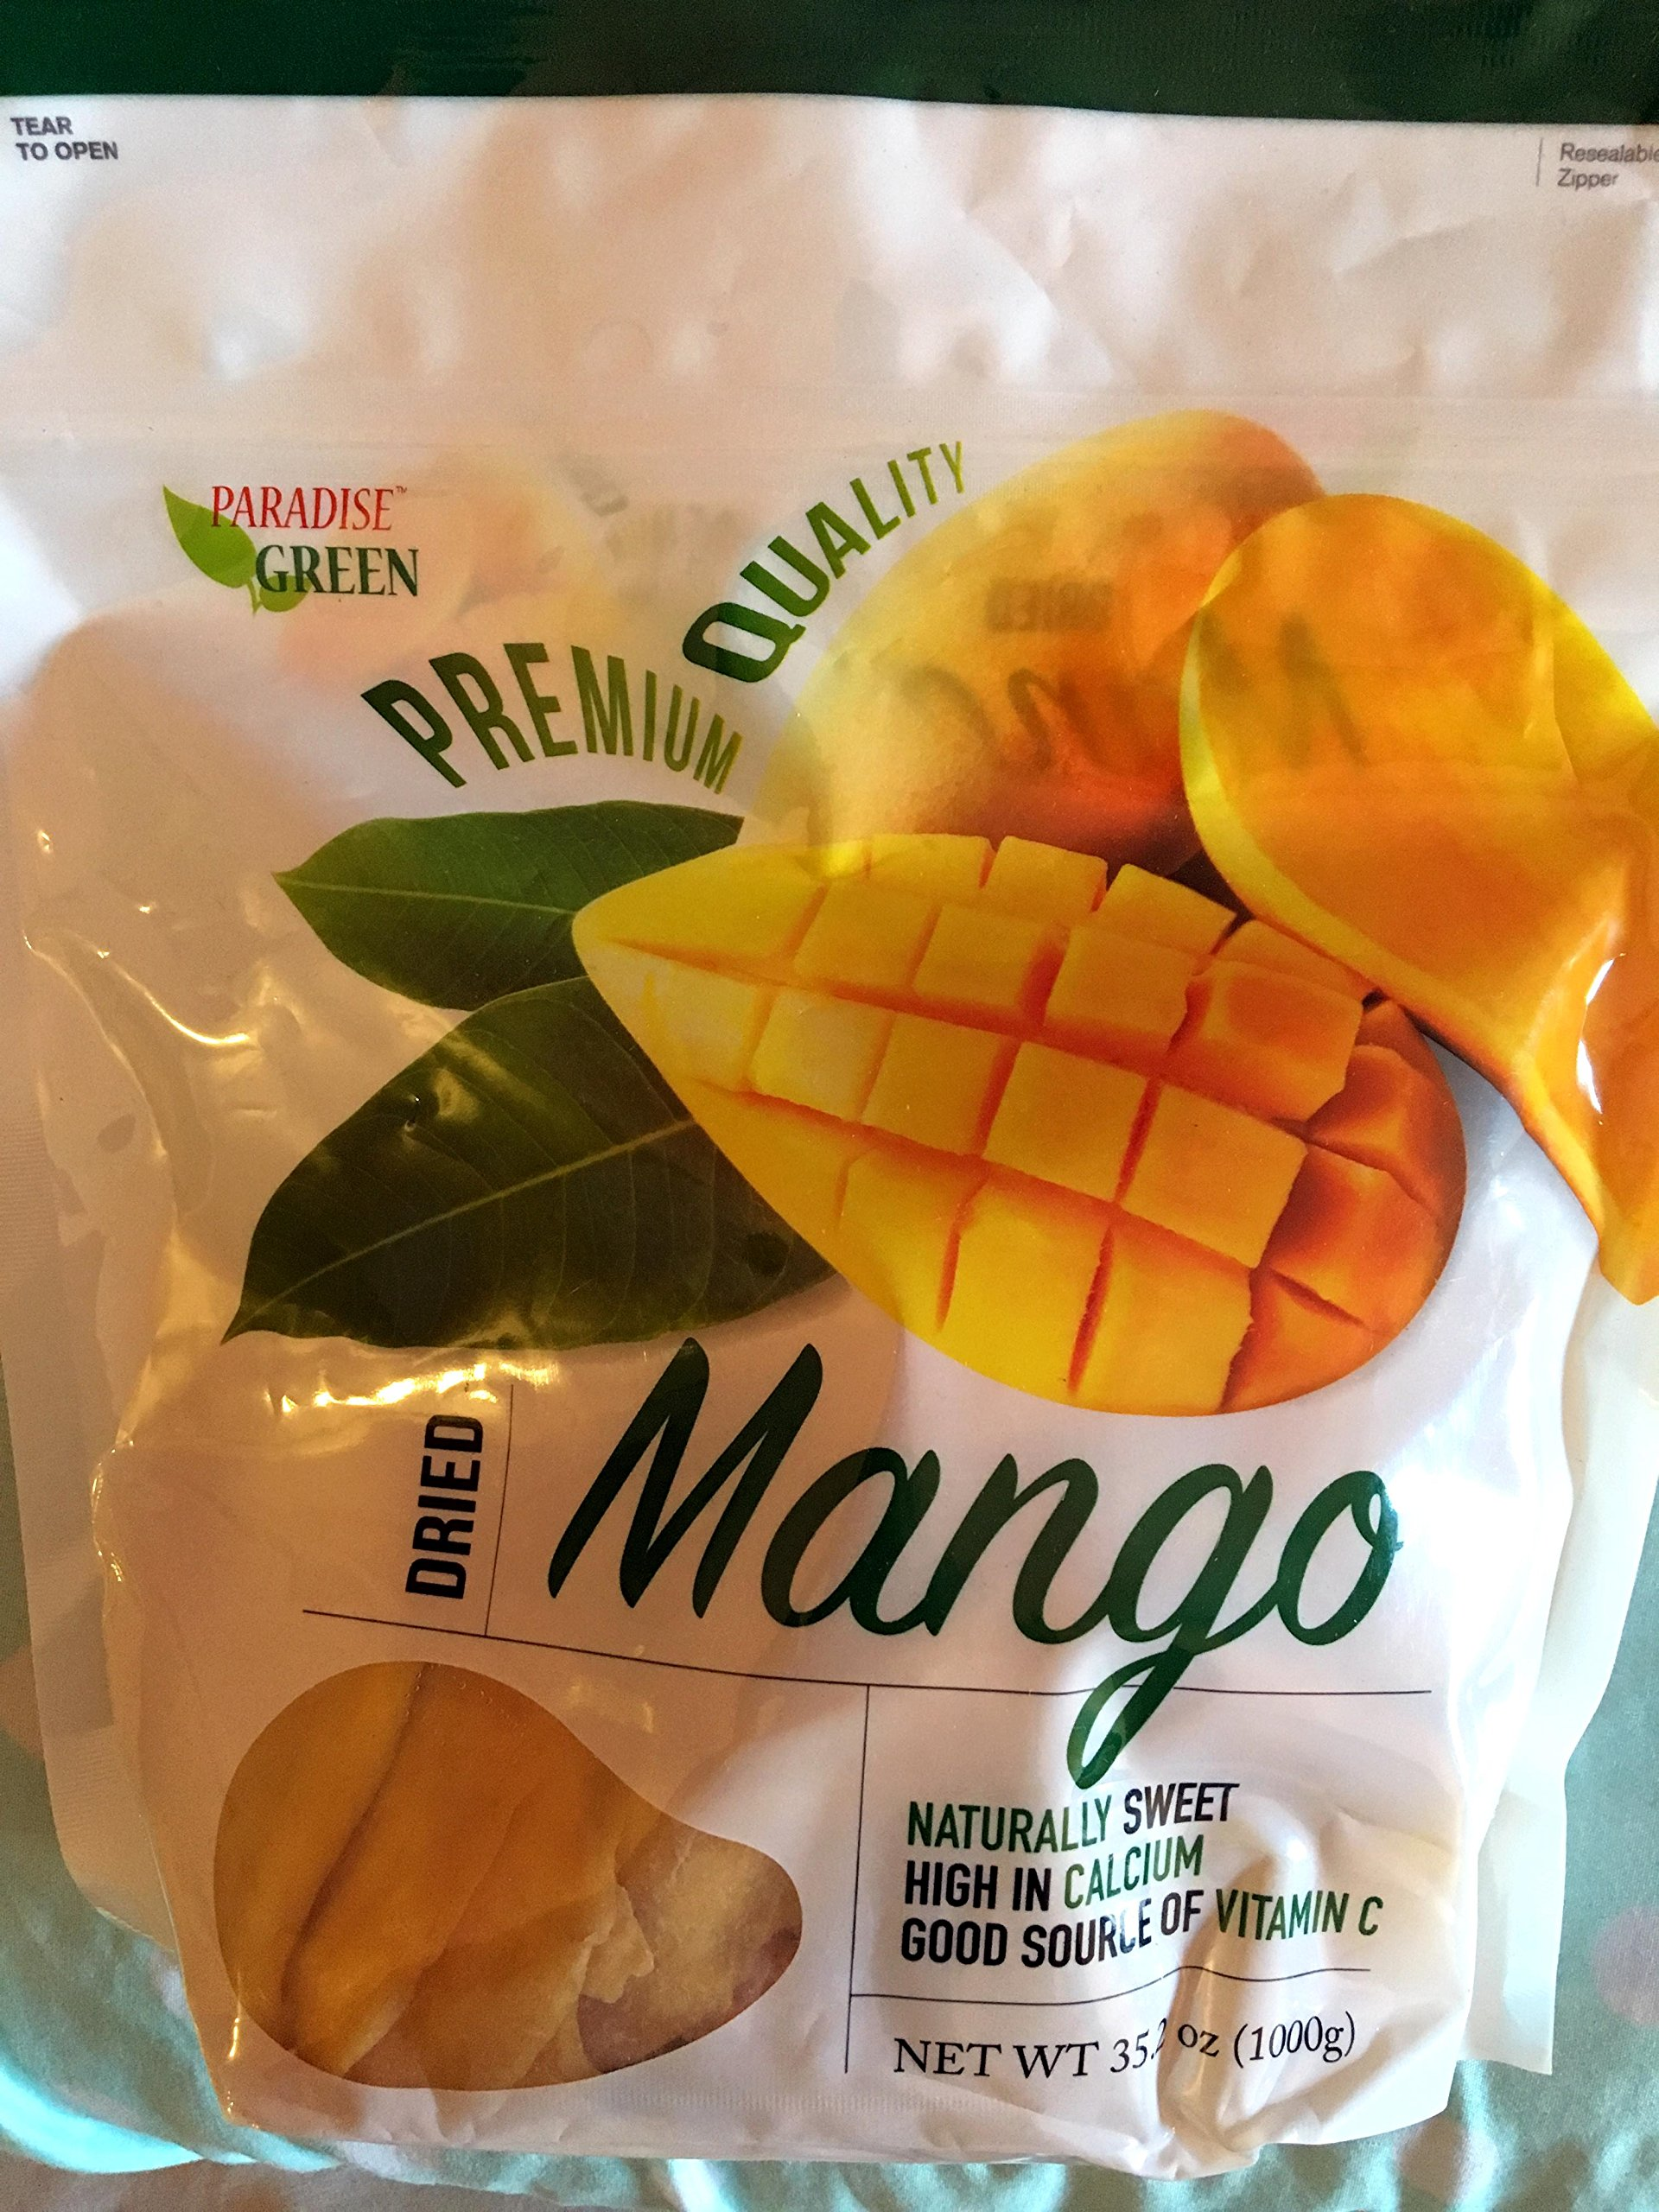 Paradise Green Dried Mango Premium Quality 35 Oz (1 Pack)